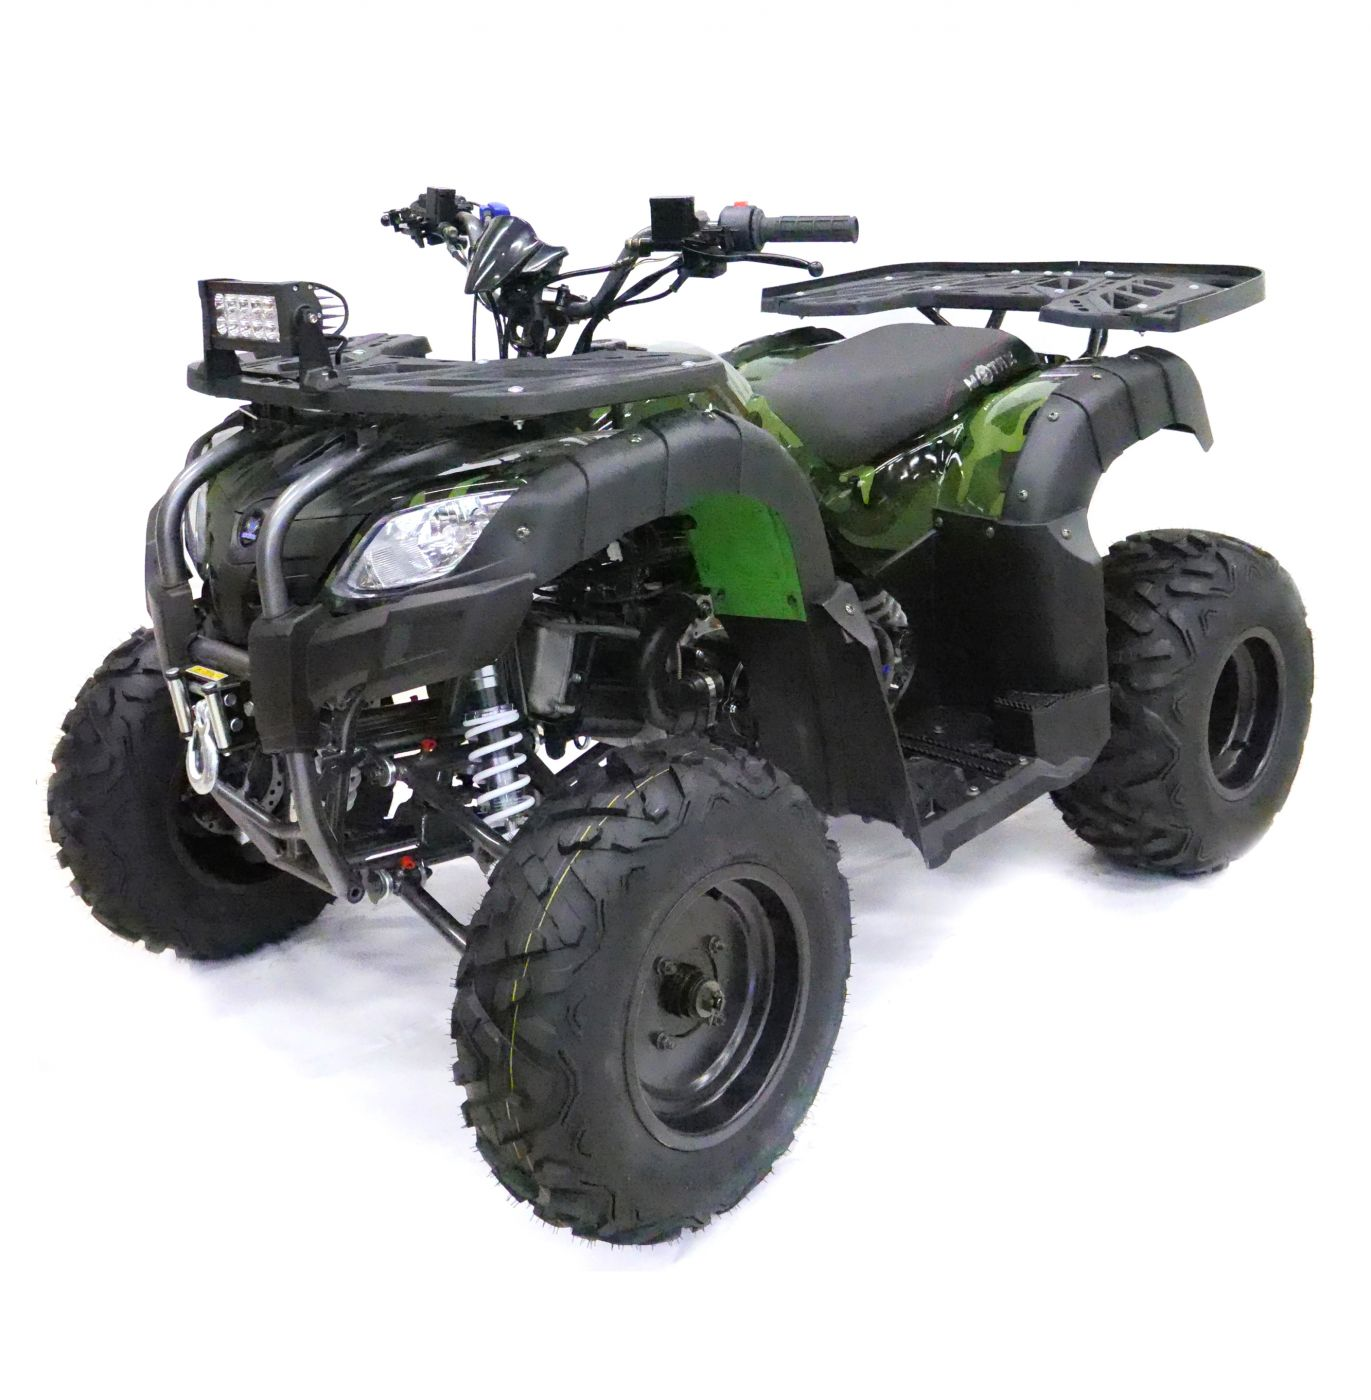 MOTAX ATV Grizlik 200 сс LUX